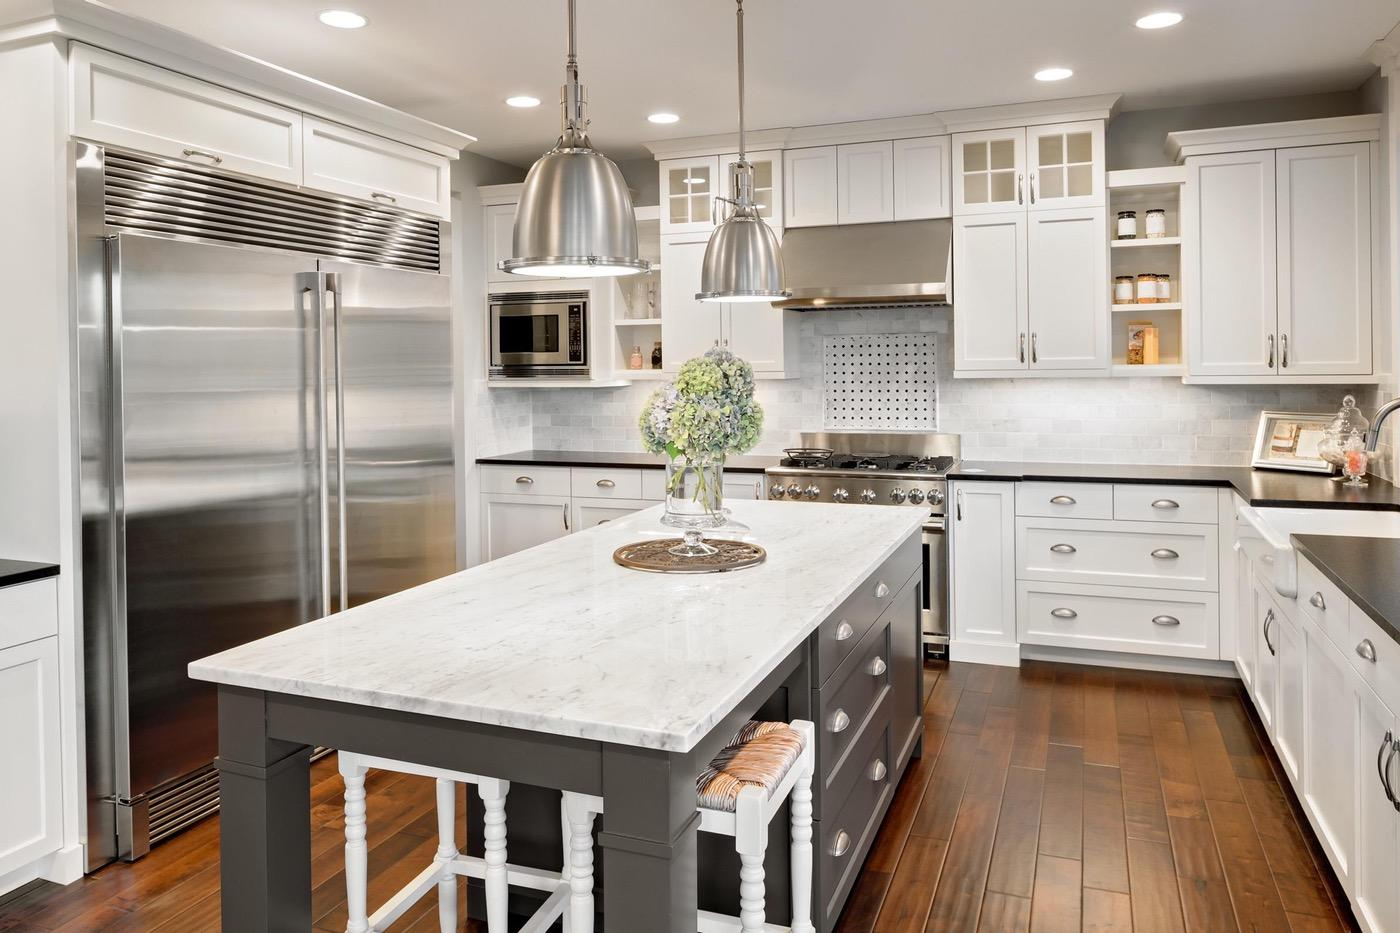 Image result for beautiful kitchen